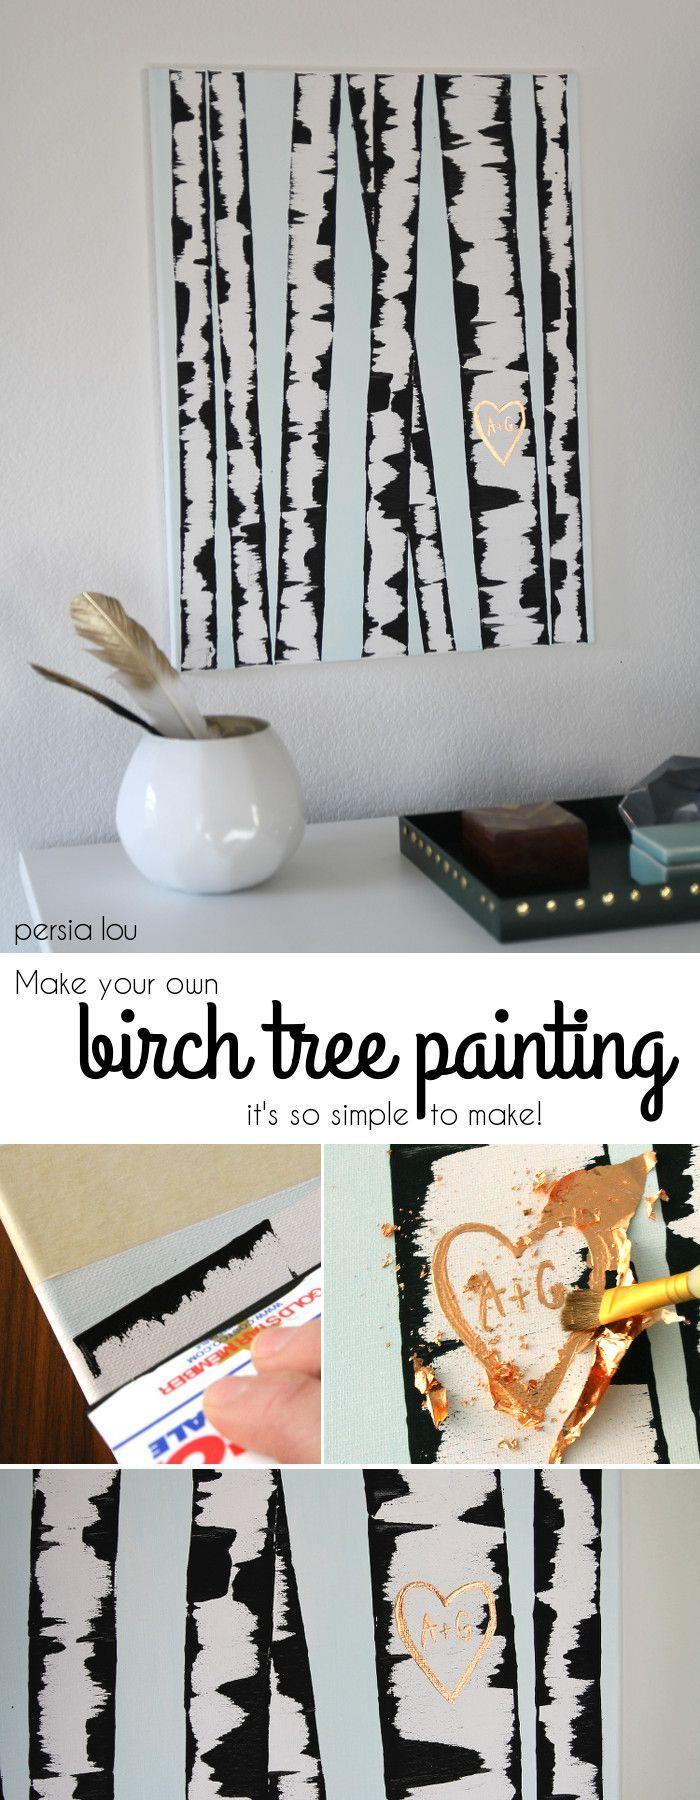 Birch tree painting dump a day for Cheap wall art ideas